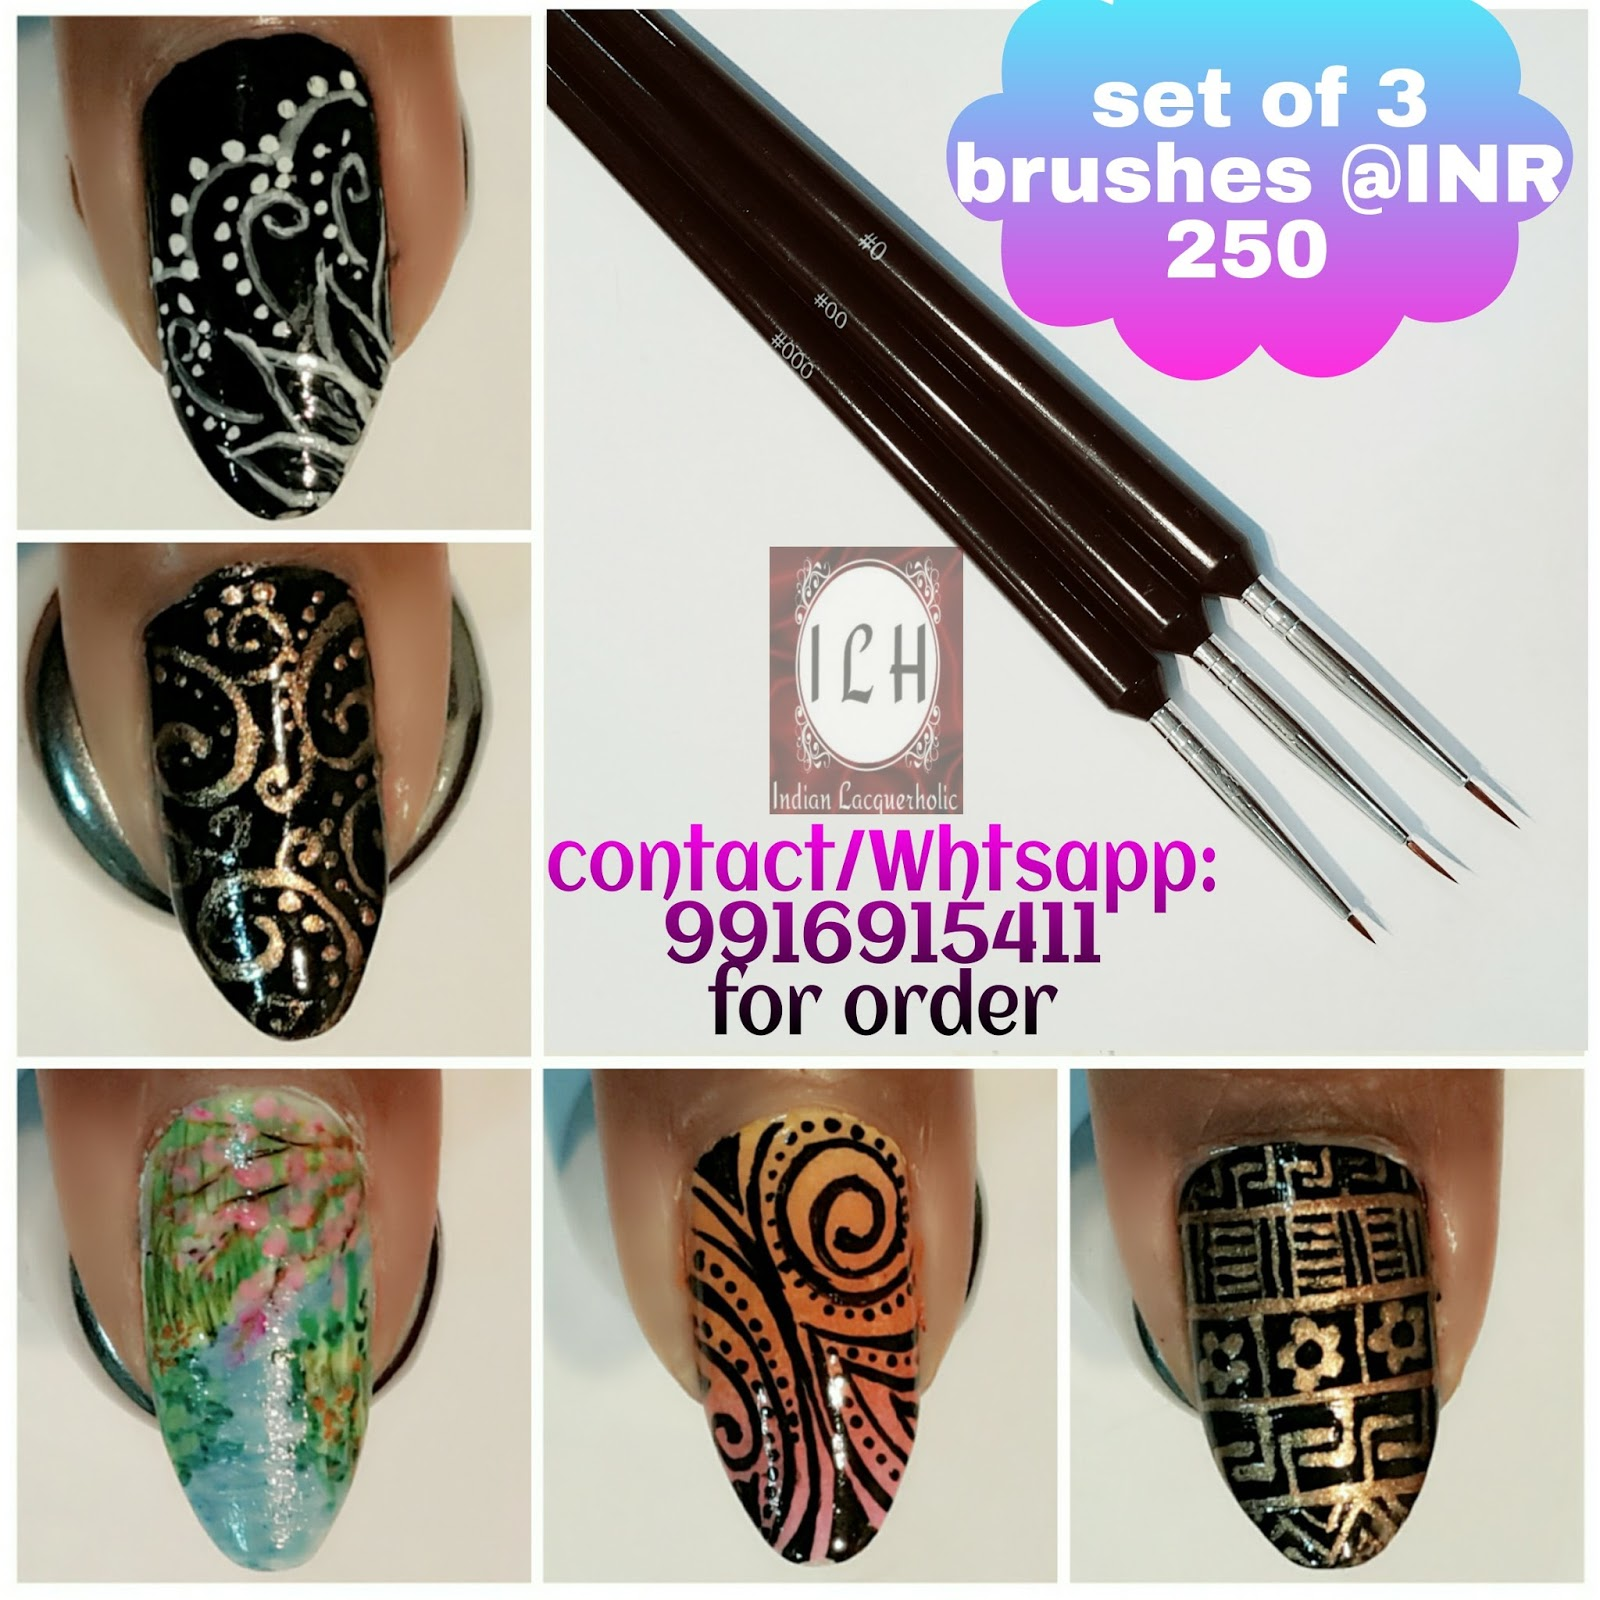 Indian lacquerholic ilh ilh nail art brush set these brushes are well tested and are recommended for freehand nailart whether you are beginner or advanced you should have them in collection prinsesfo Gallery